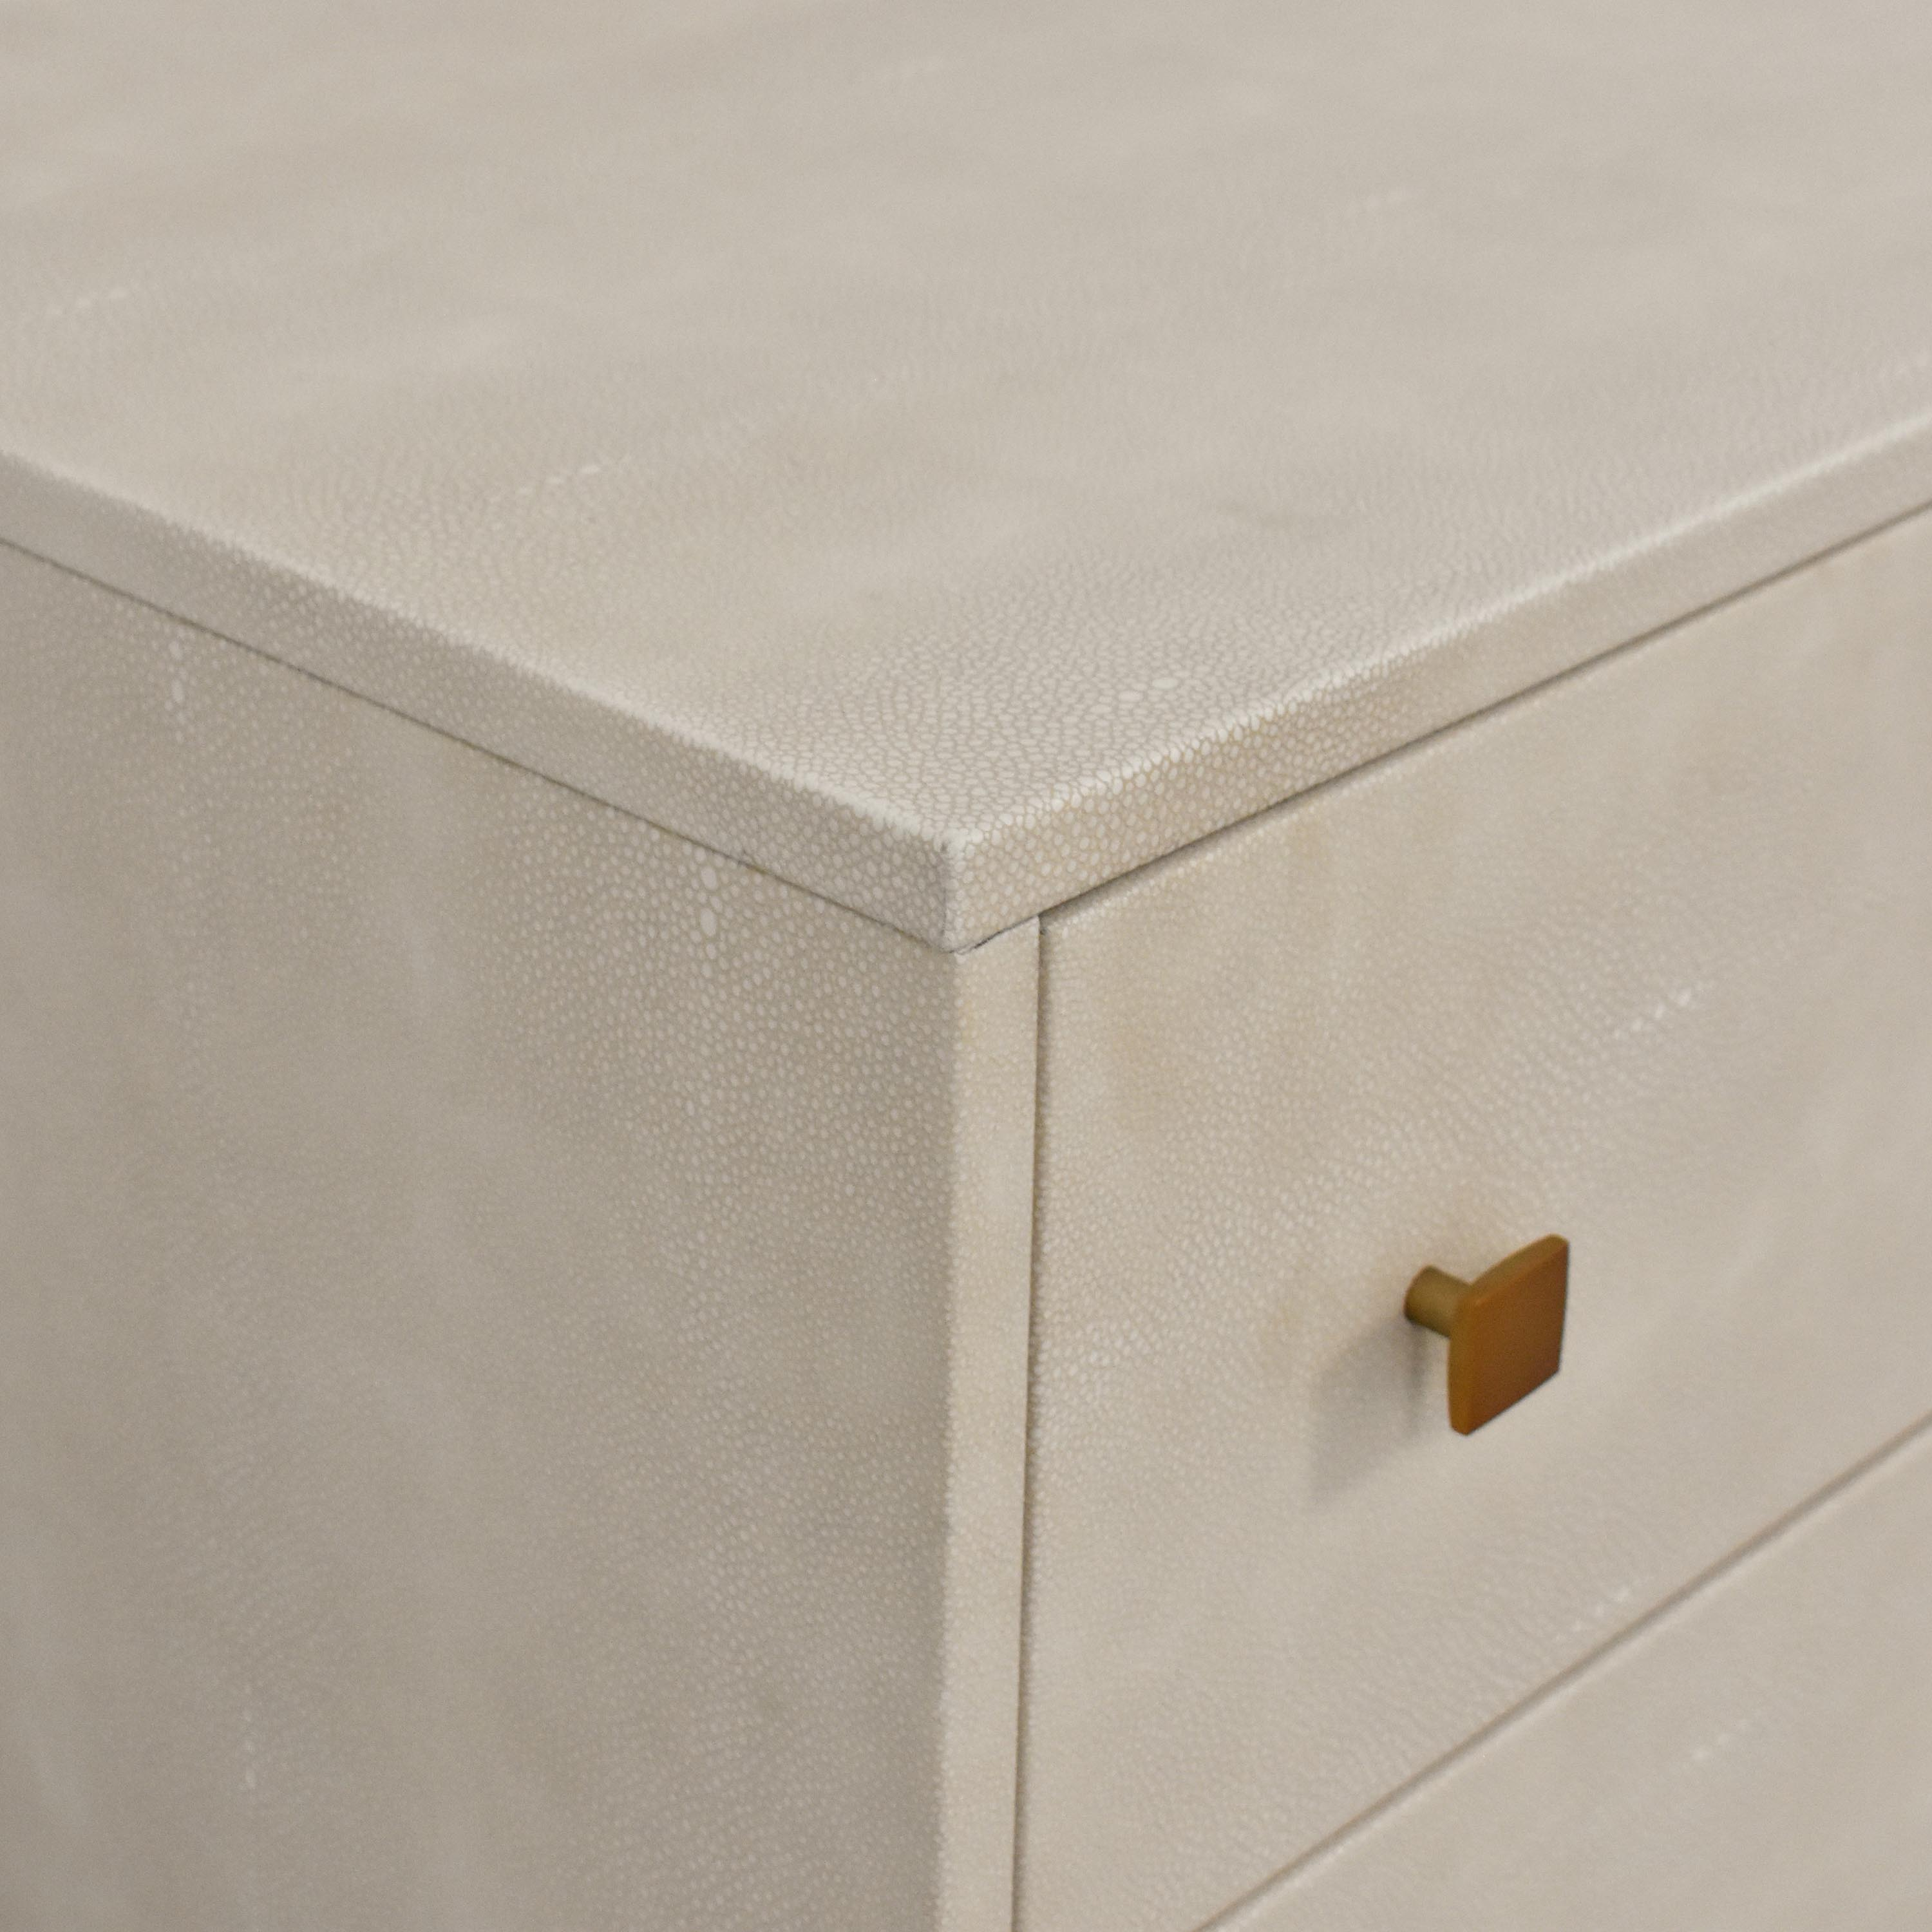 CB2 CB2 Shagreen Embossed Low Dresser coupon